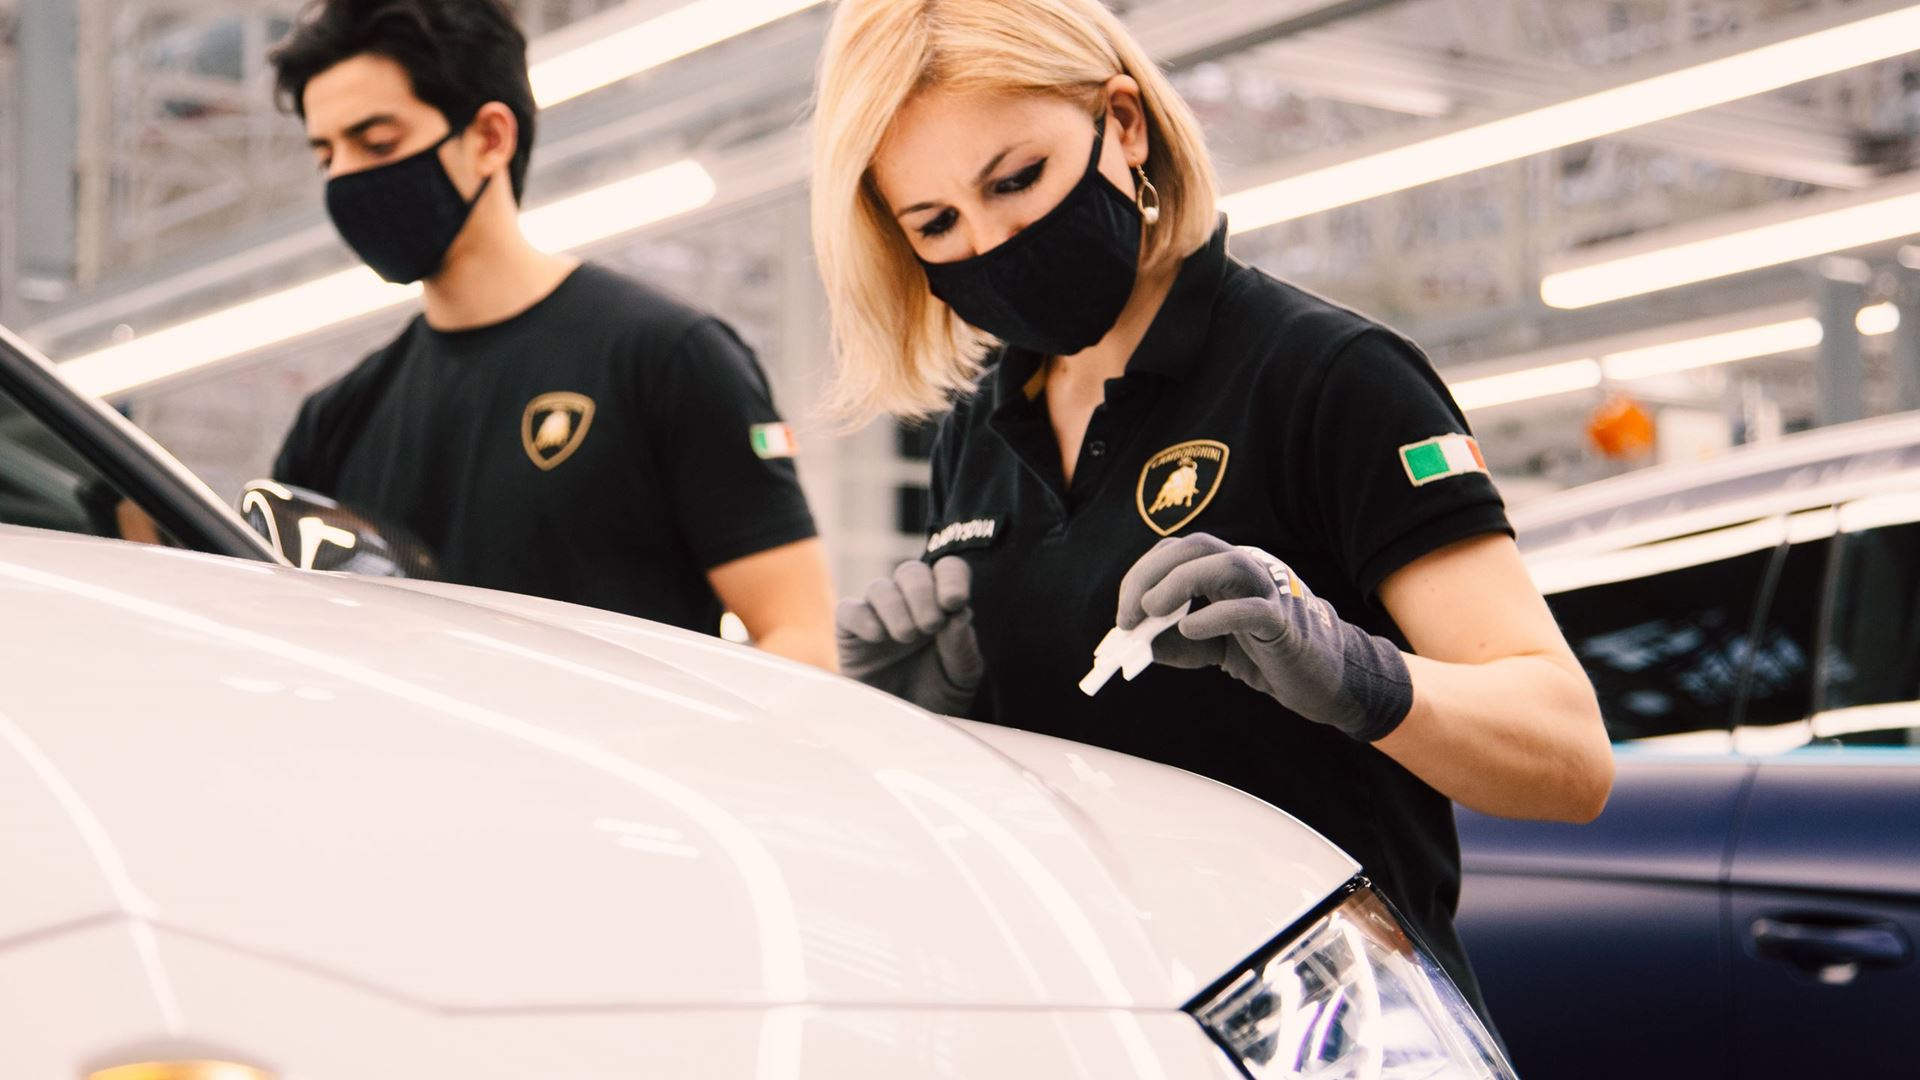 In the European Diversity Month, Automobili Lamborghini confirms its commitment to diversity, inclusion and equality with innovative programs - Image 7